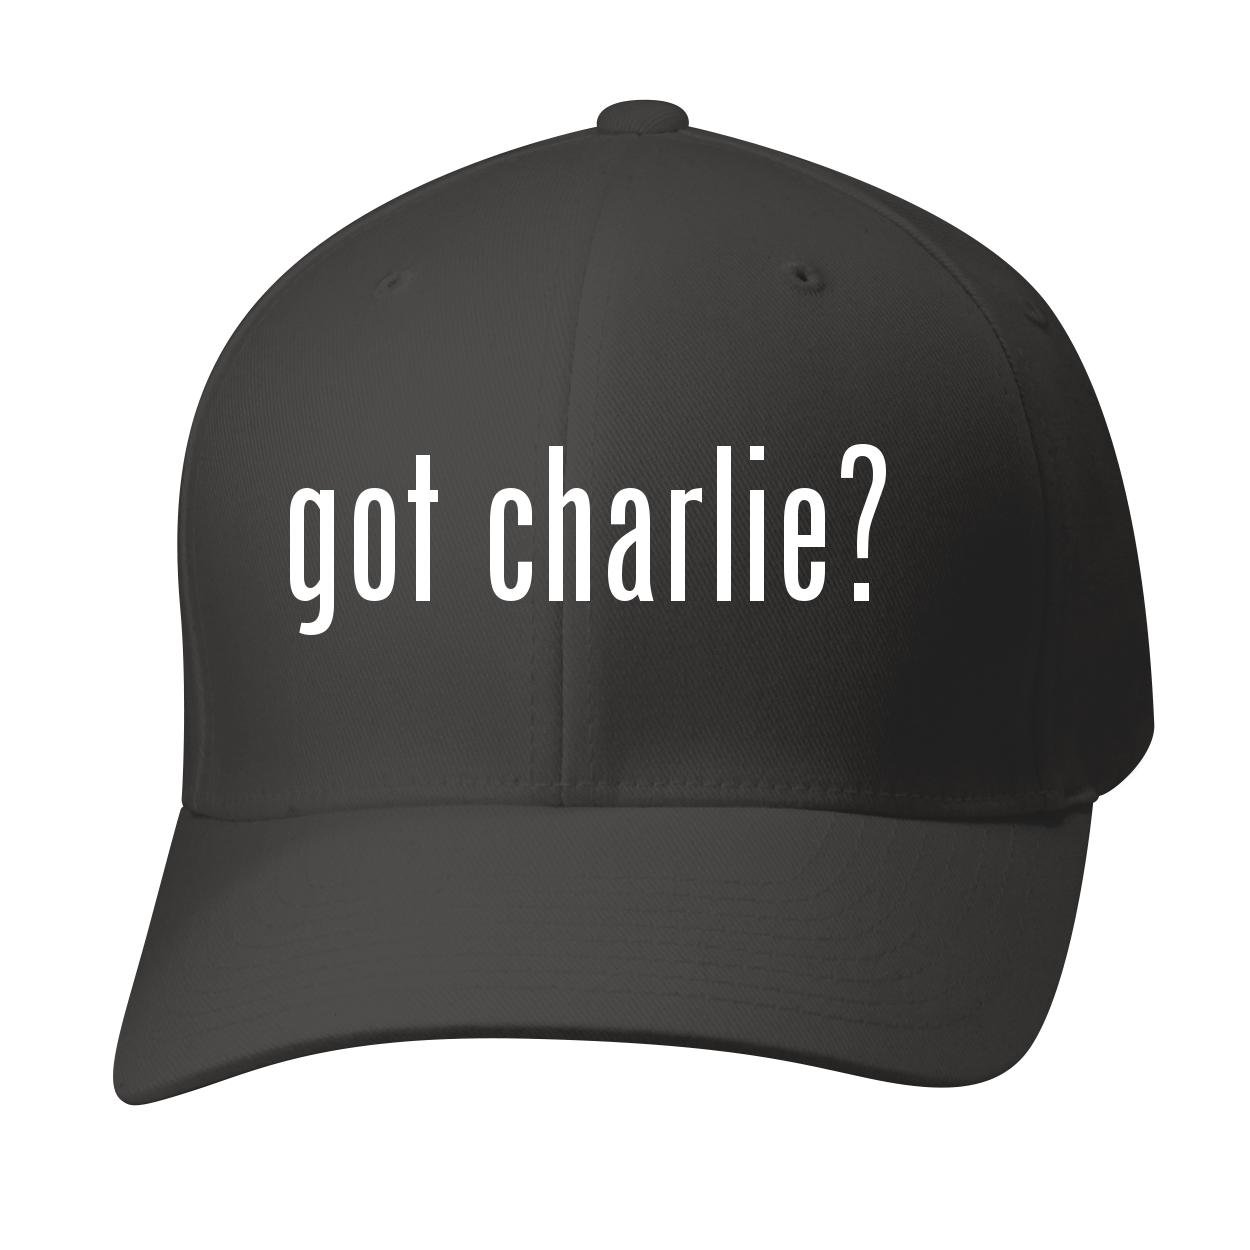 3c7127f9ea9 BH Cool Designs got Charlie  - Baseball Hat Cap Adult at Amazon Men s  Clothing store